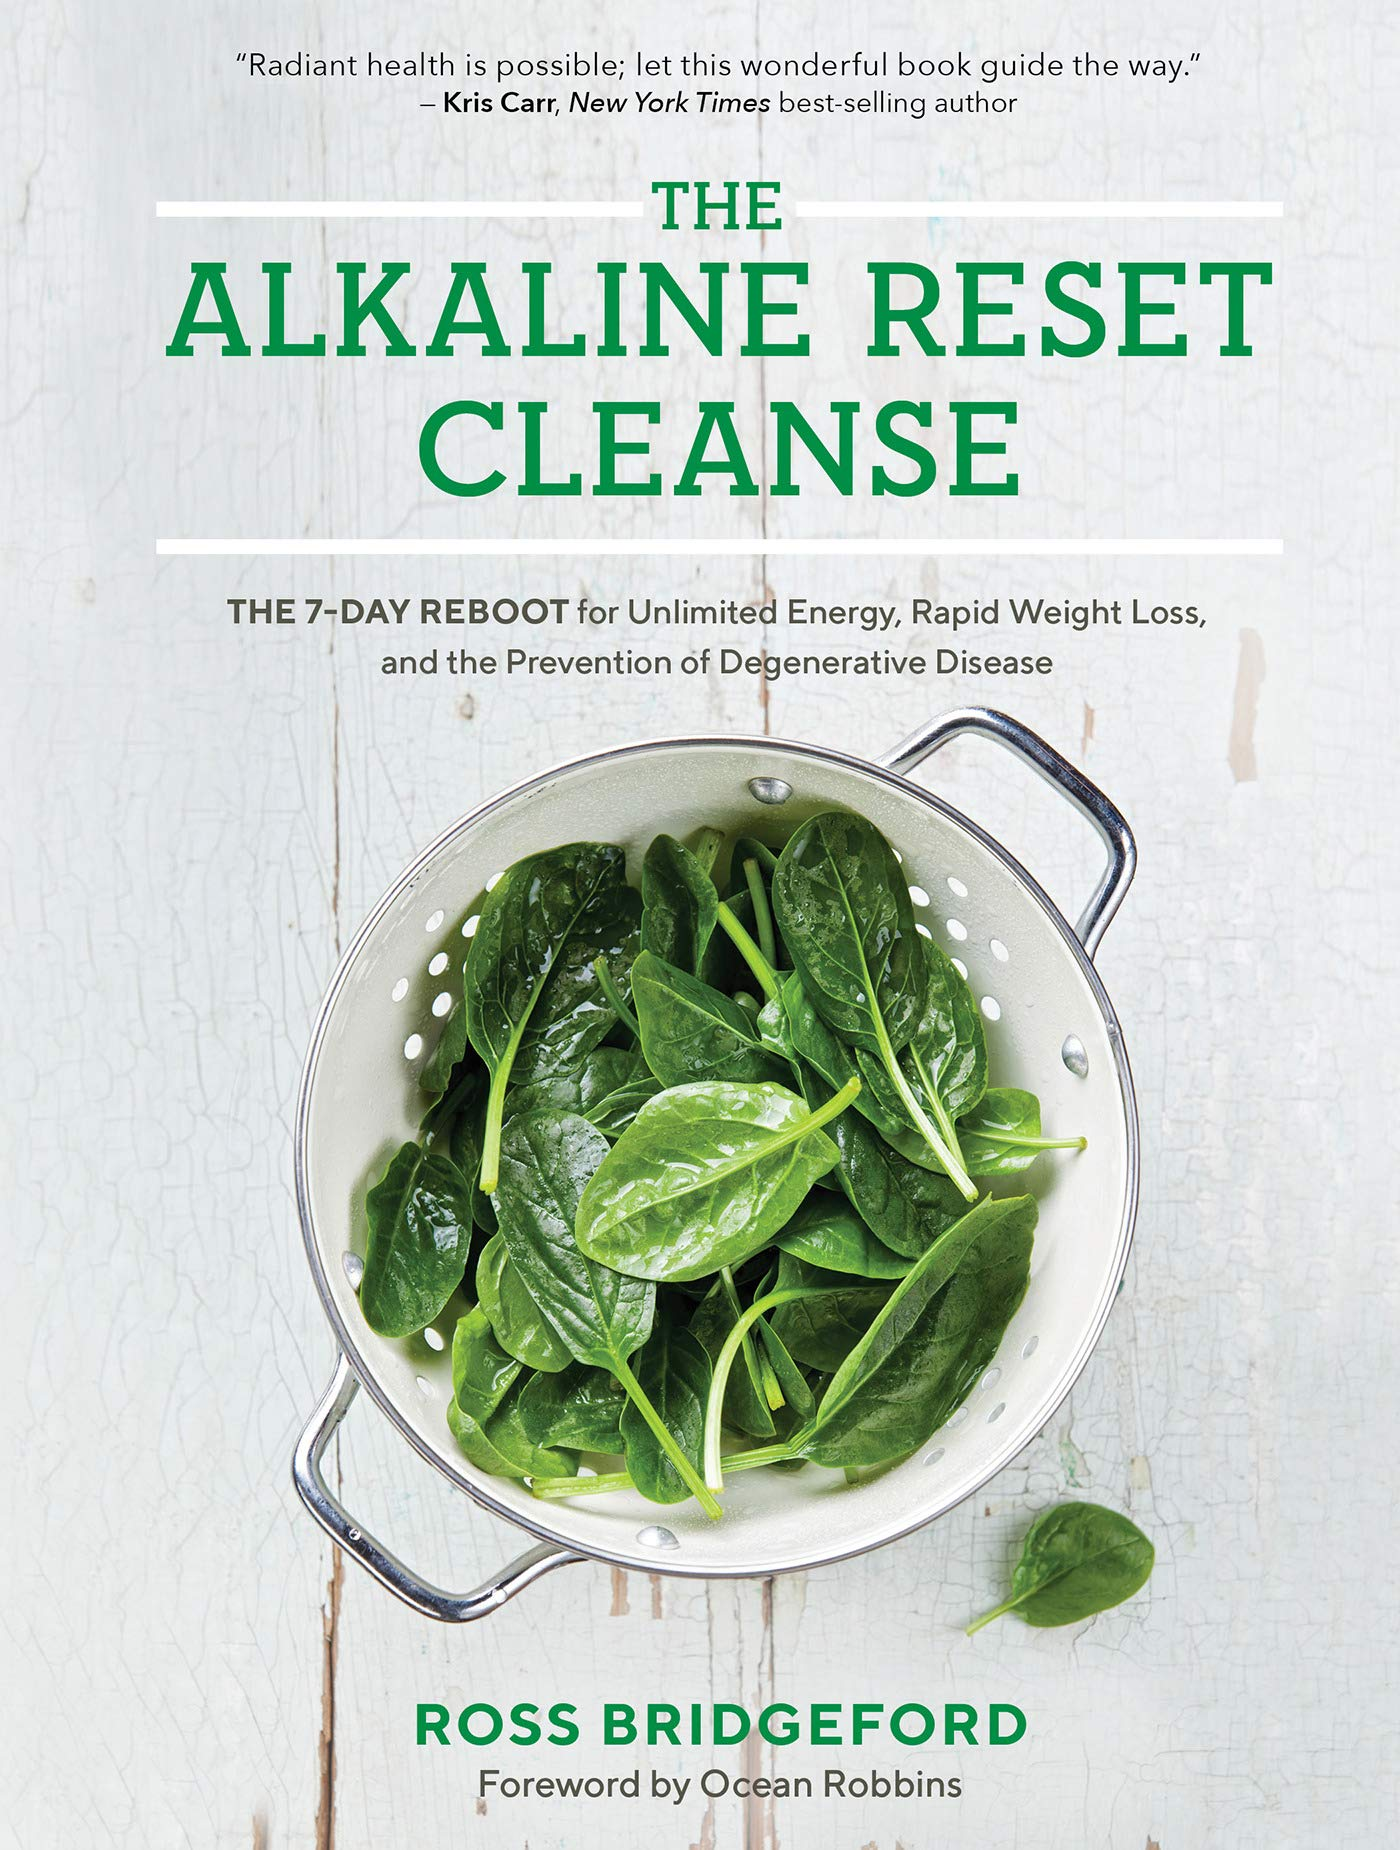 The Alkaline Reset Cleanse: The 7-Day Reboot for Unlimited